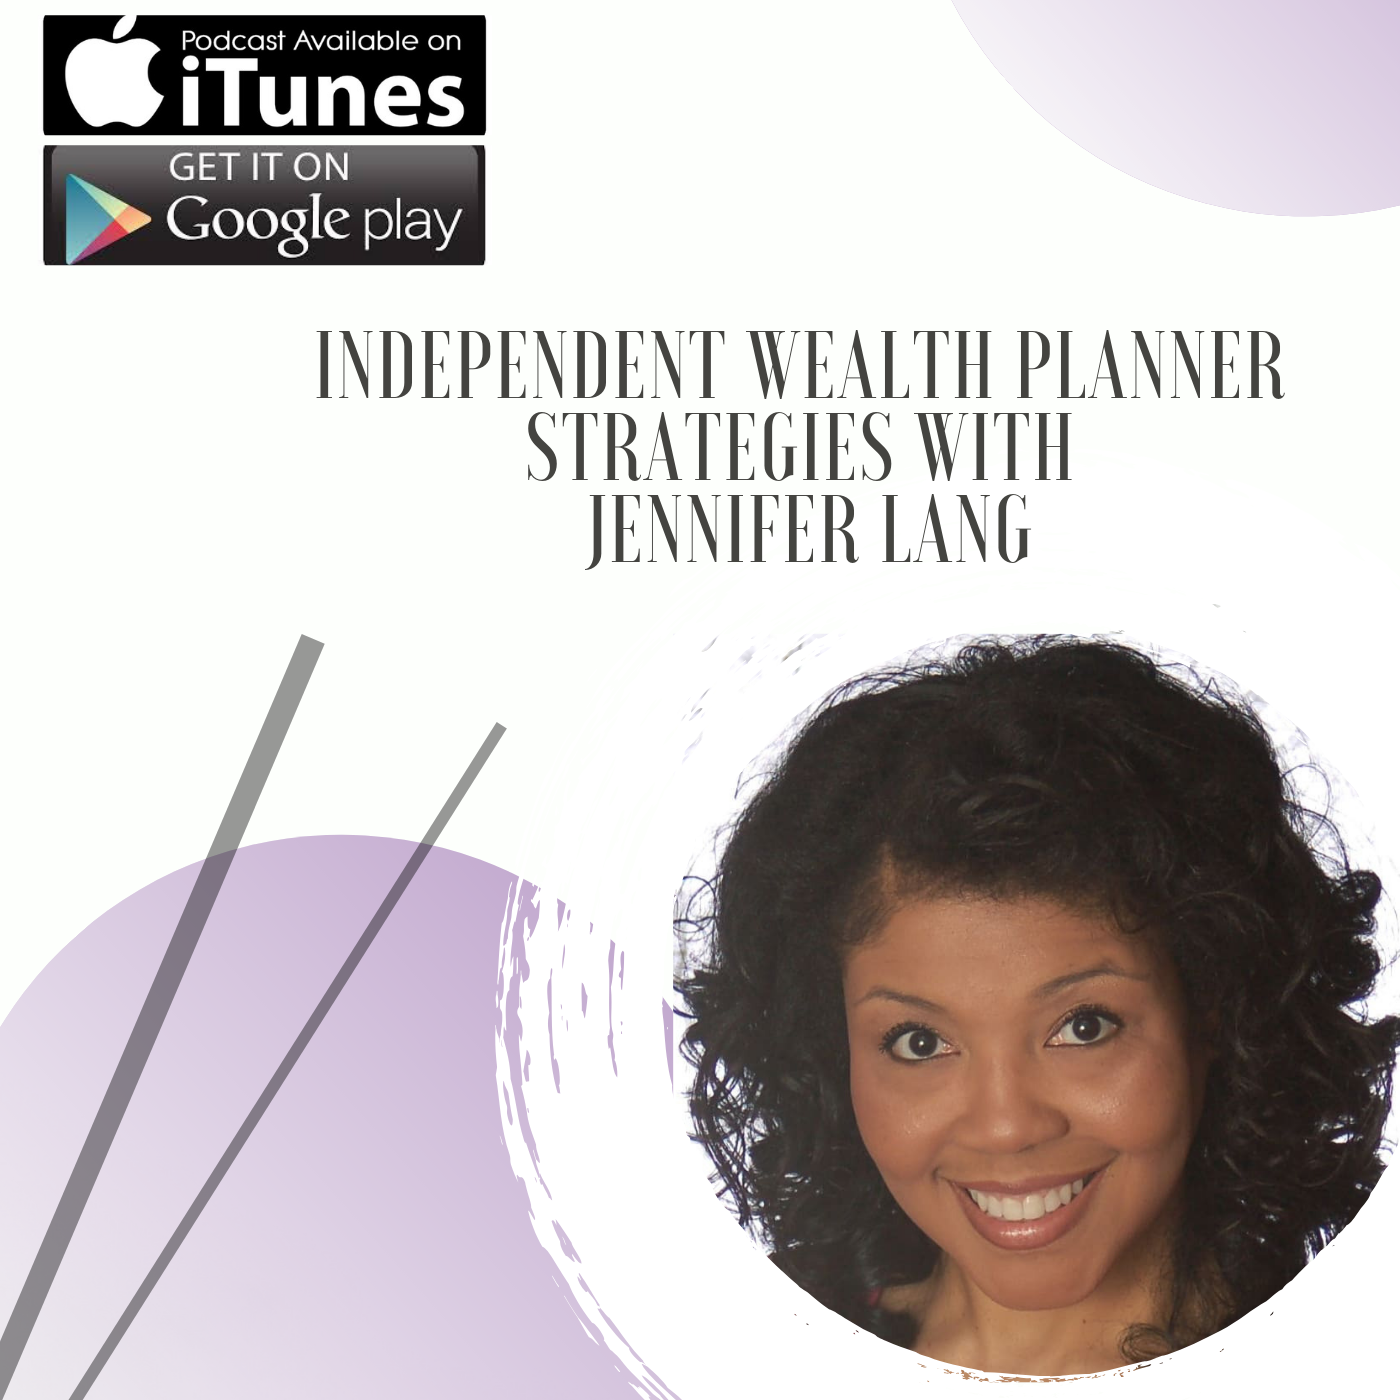 The Independent Wealth Planner Strategies Podcast